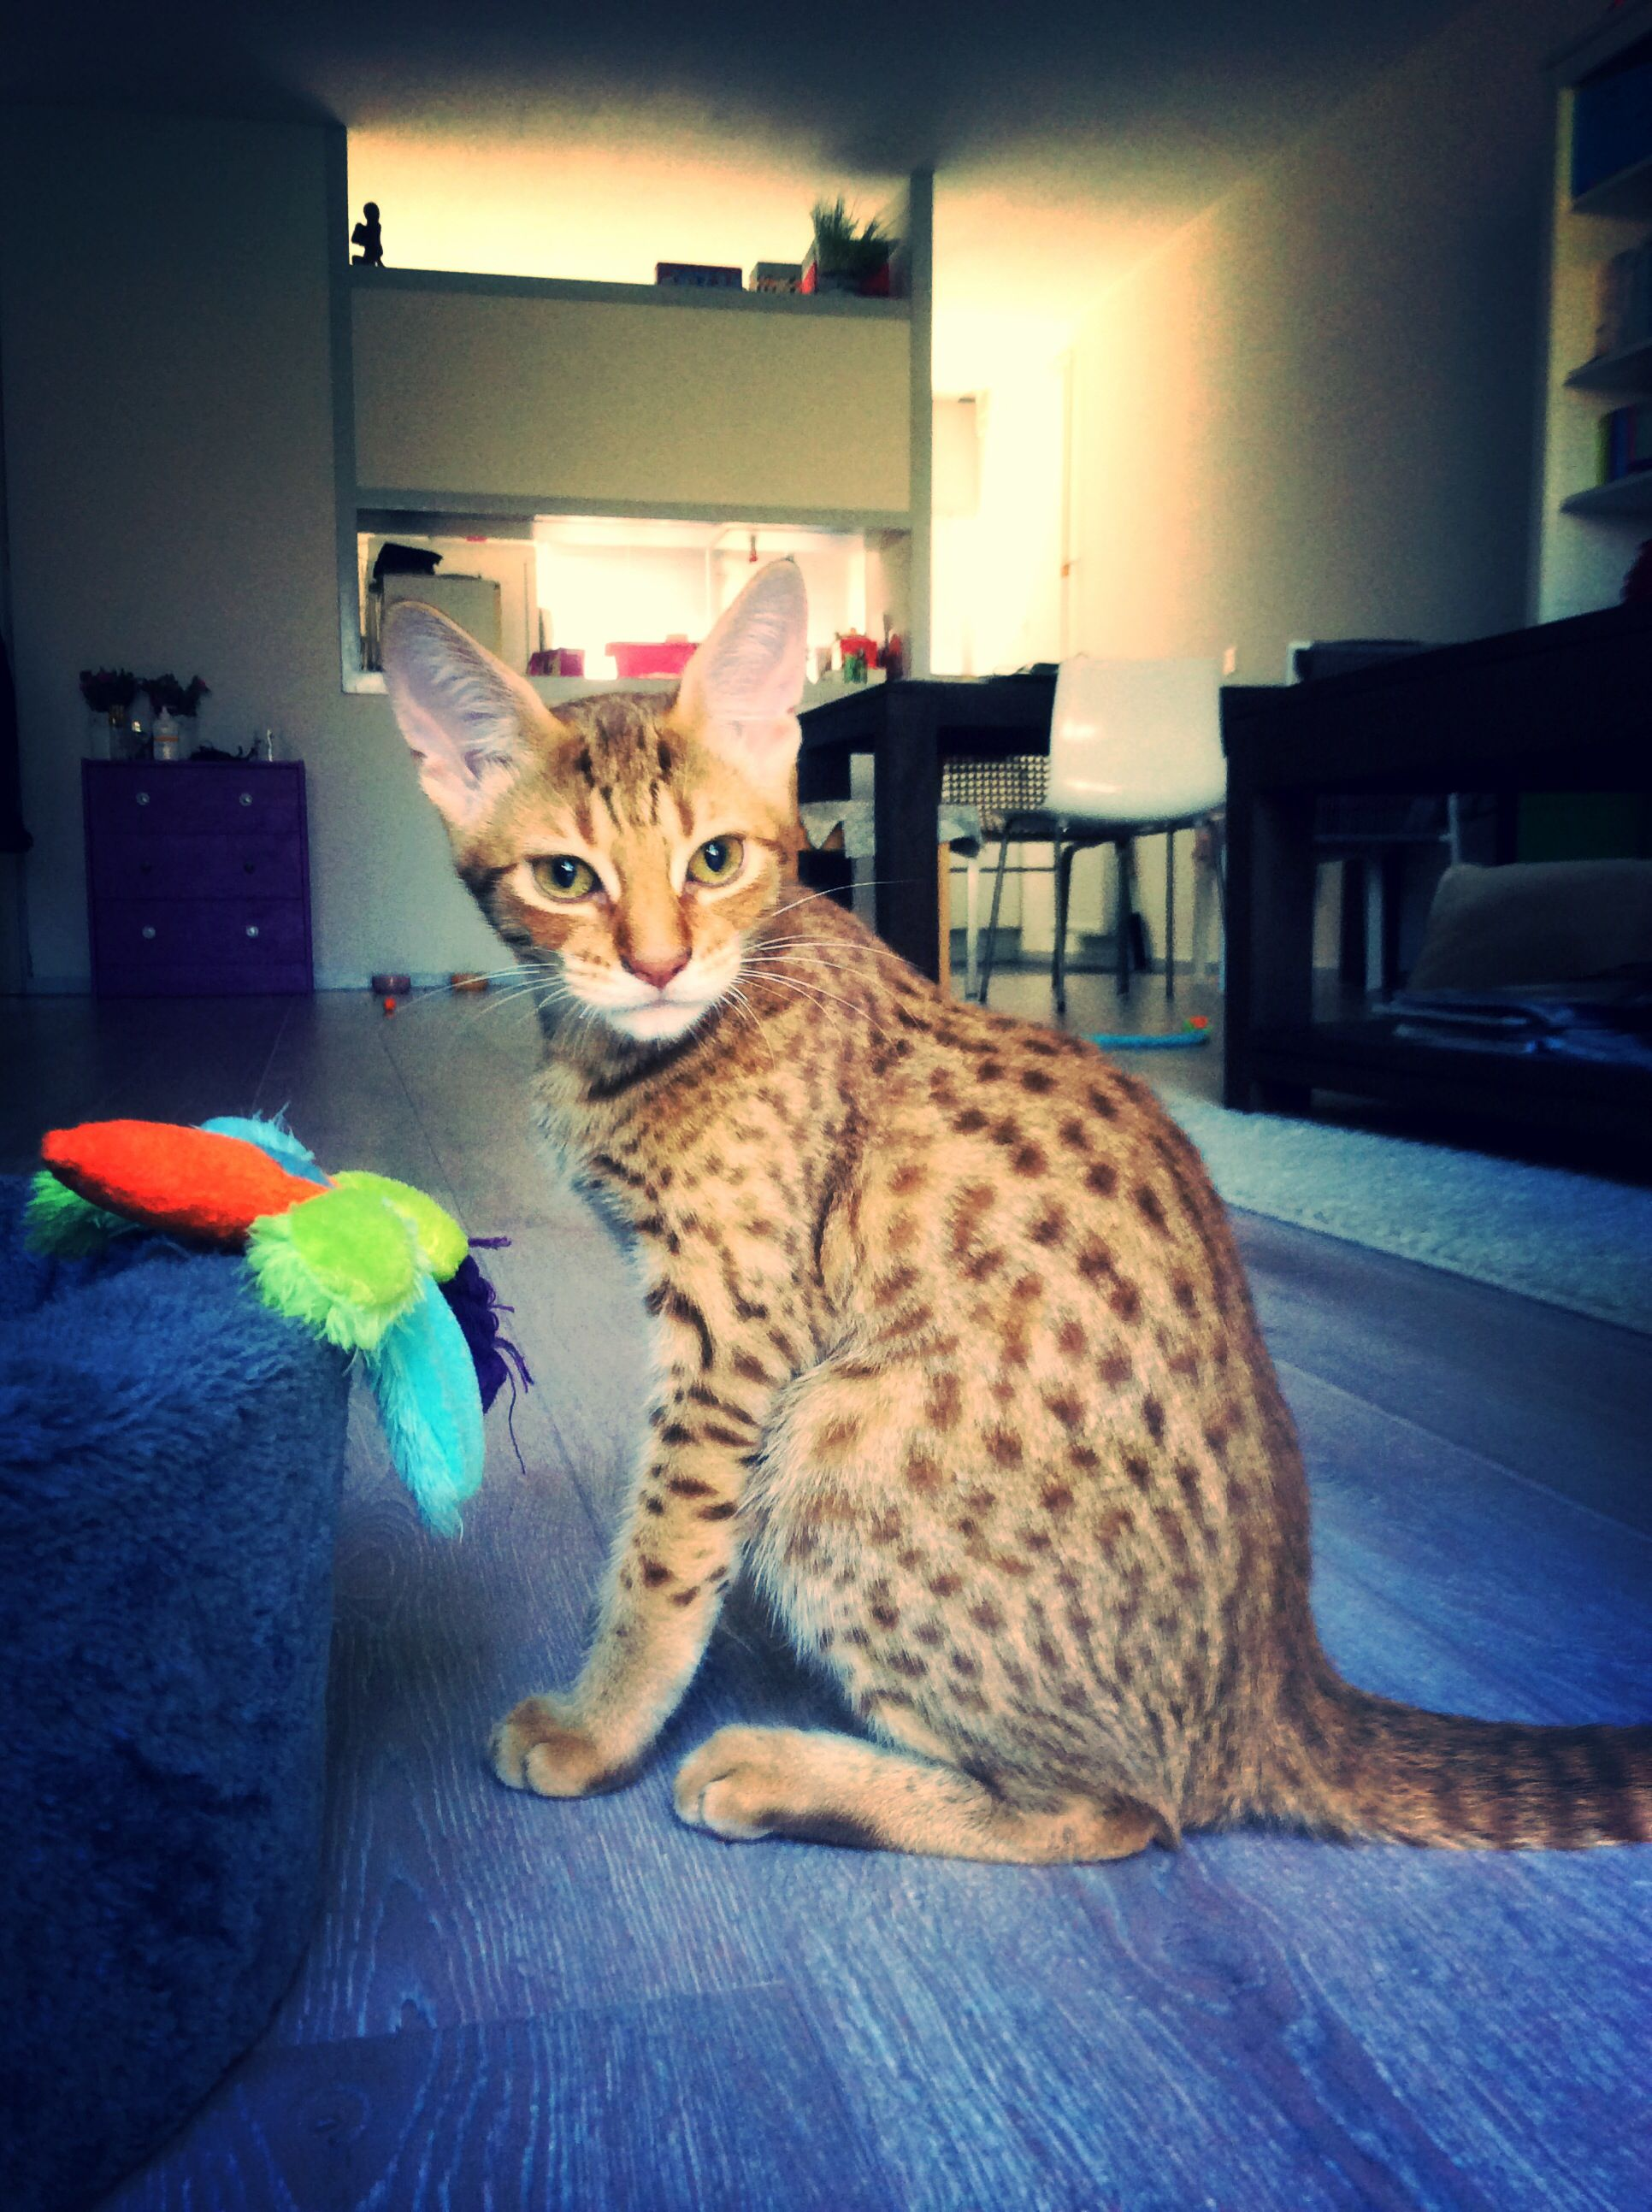 This is my cheetoh cat Beau ❤ Half ocicat